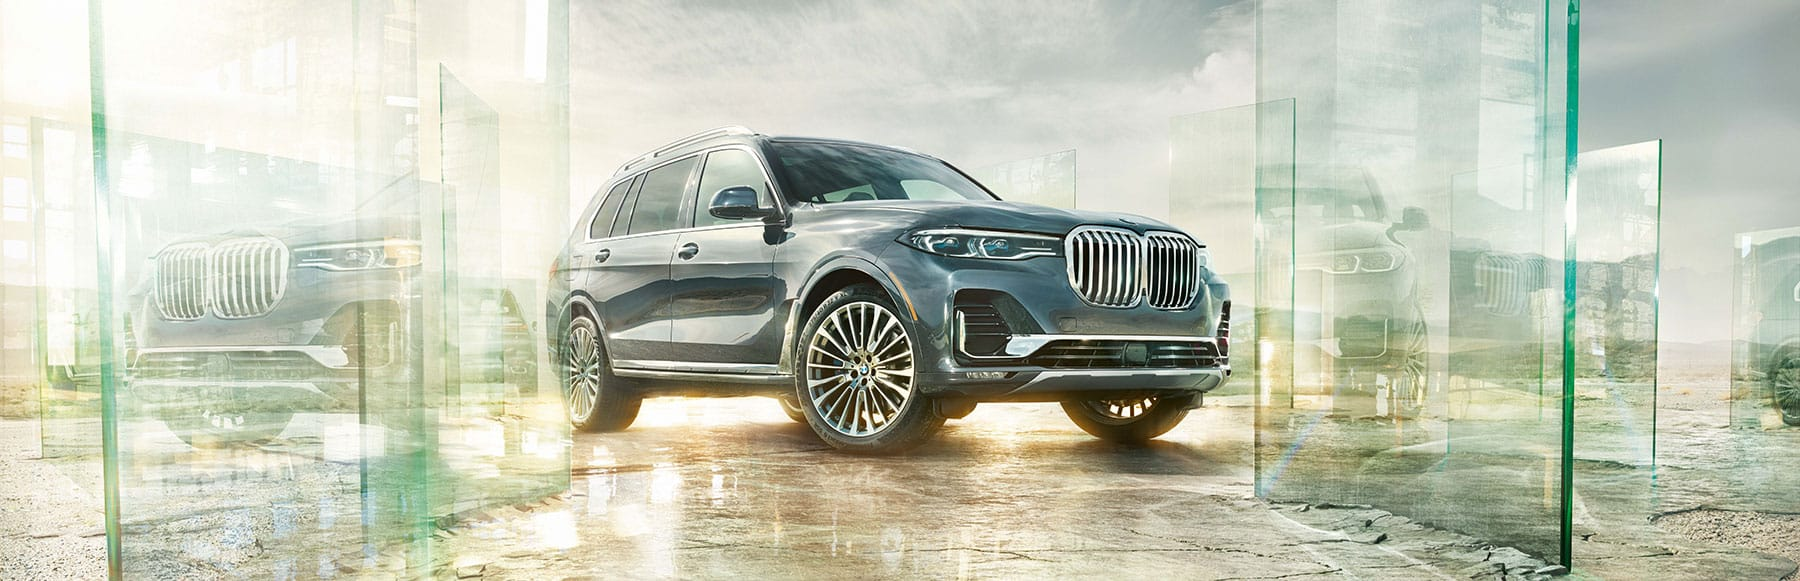 2019 Bmw X7 Pictures Specs And Information Bmw Fresno